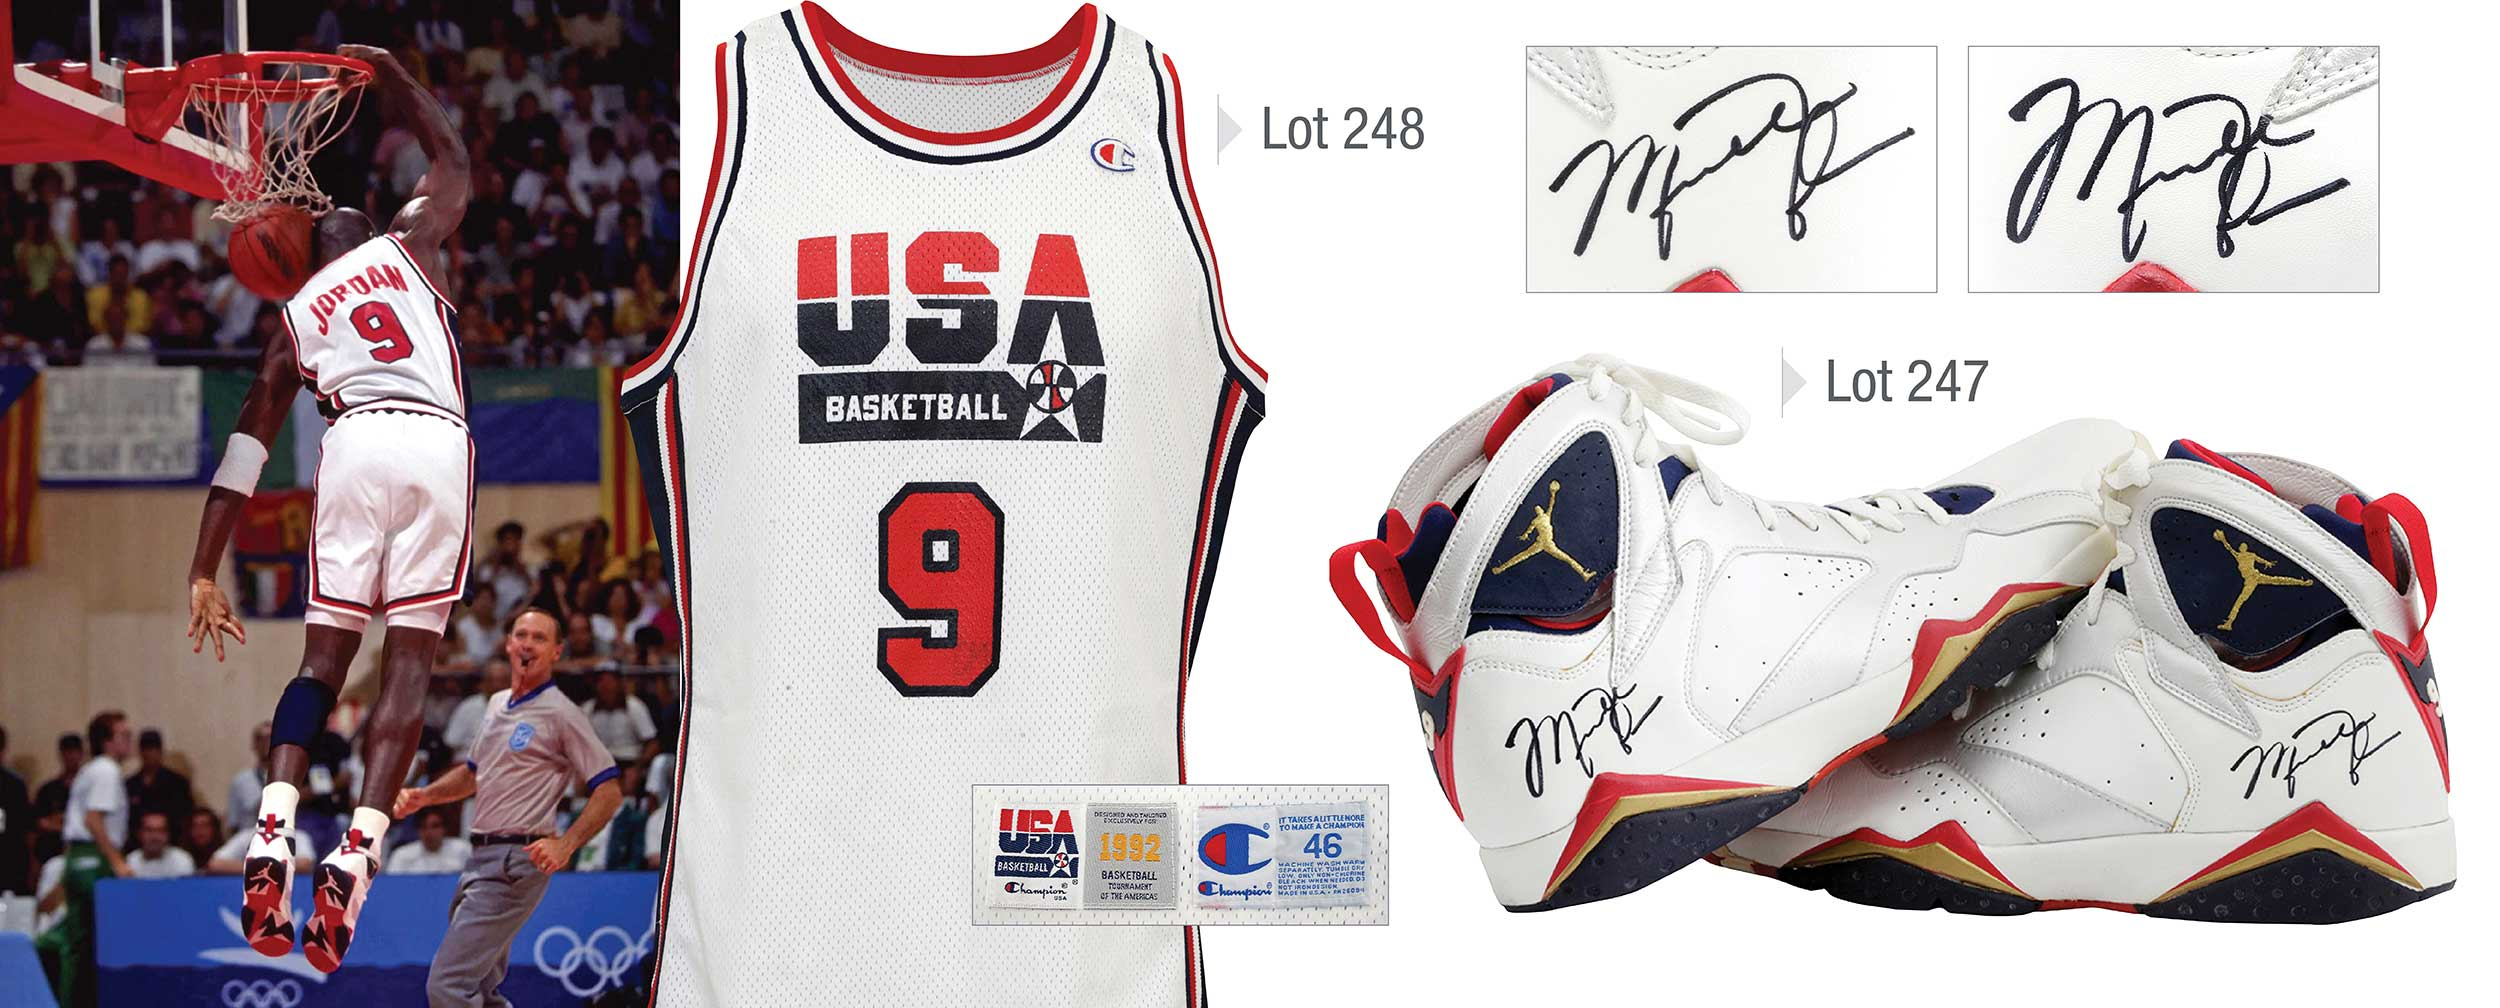 Sports Memorabilia Auctions   Appraisals - Game Used Jerseys - Authentic  Autographs   Game Worn Collectibles 3156fd7f5